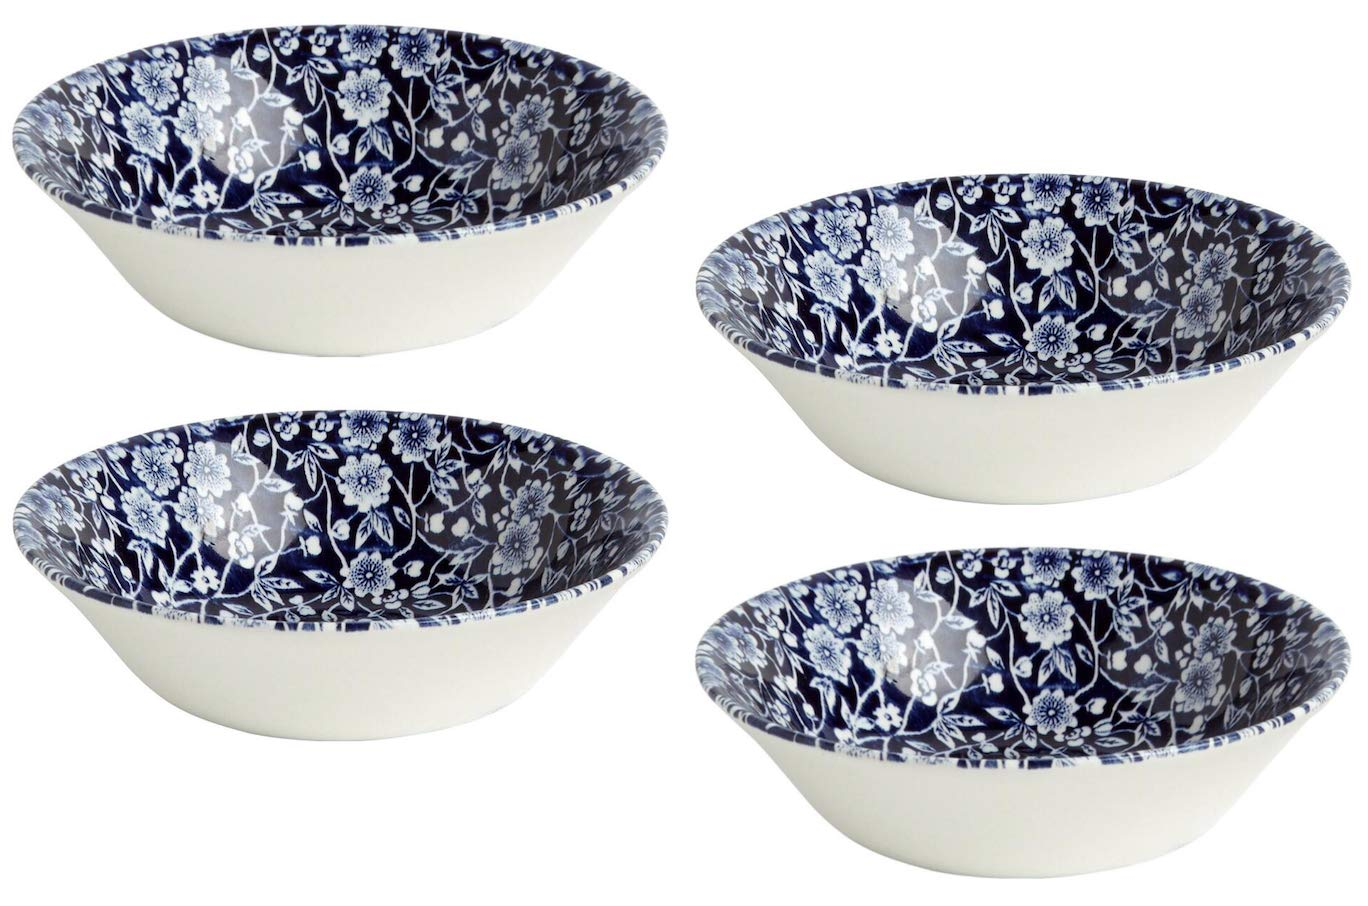 Made in England 10-Oz Capacity Queens by Churchill Victorian Calico Floral Blue Soup//Cereal//Dessert Bowls Set of 4 6L x 6 W x 1.75H